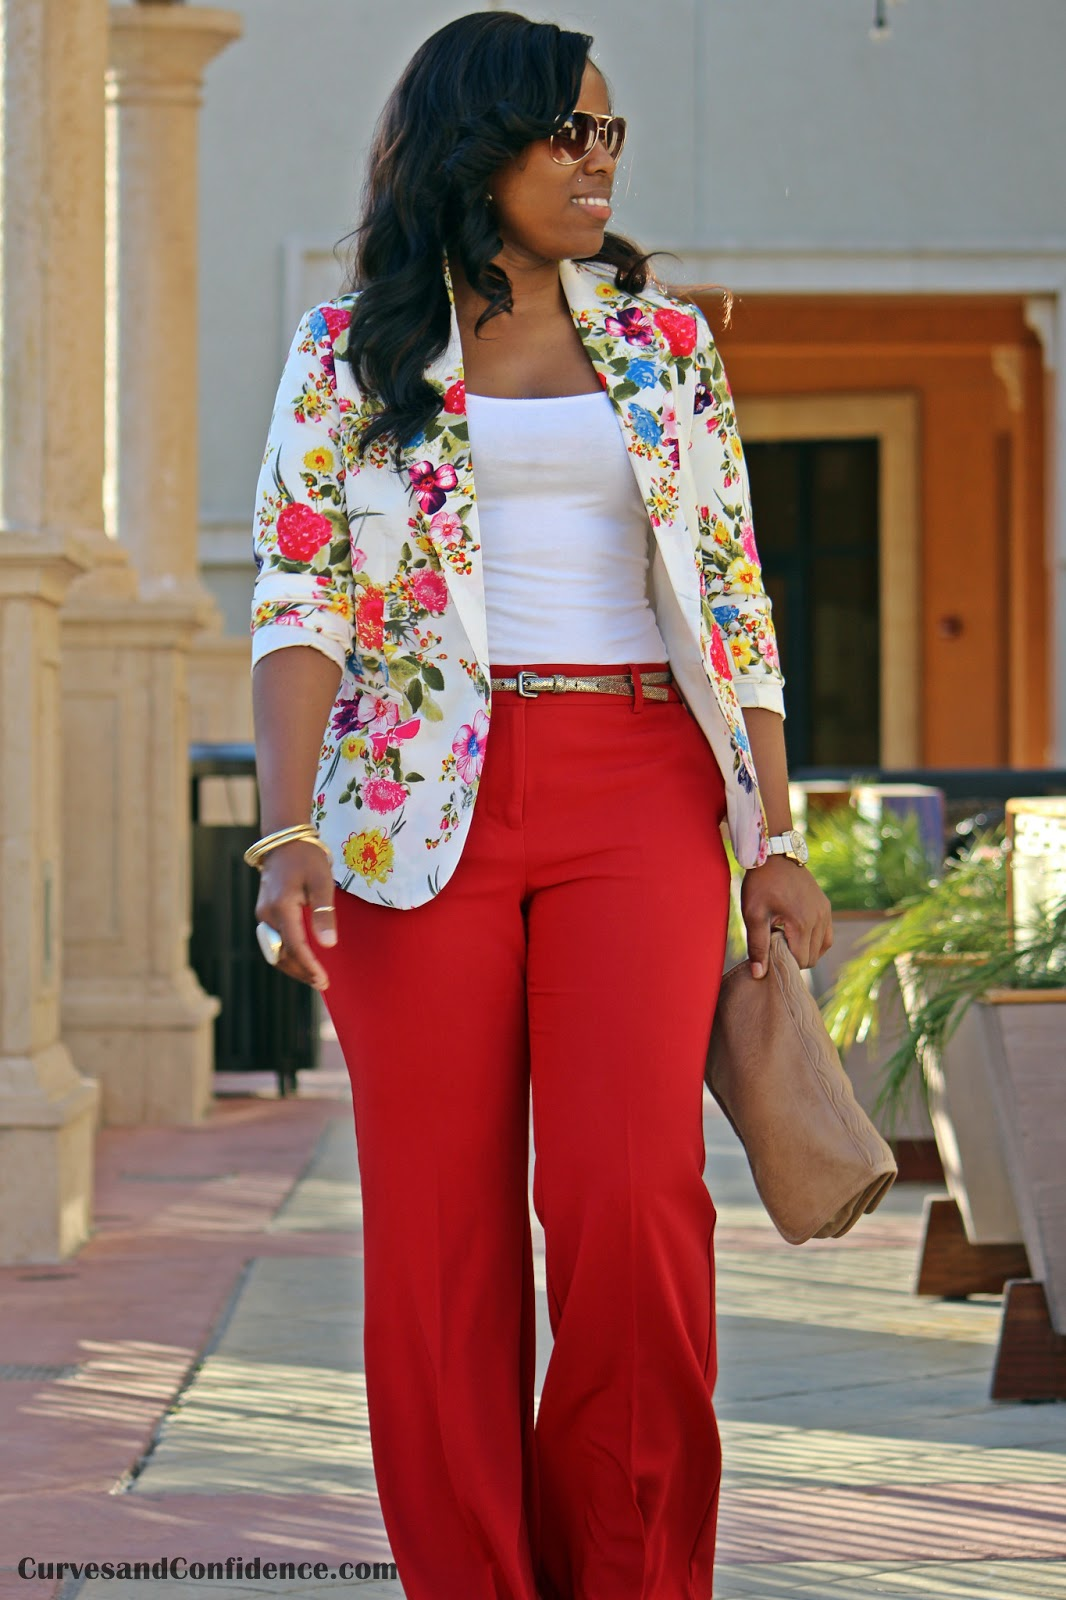 Cool  Red Pants Pins  Red Pants Outfit Red Jeans Outfit And Blazer Outfits